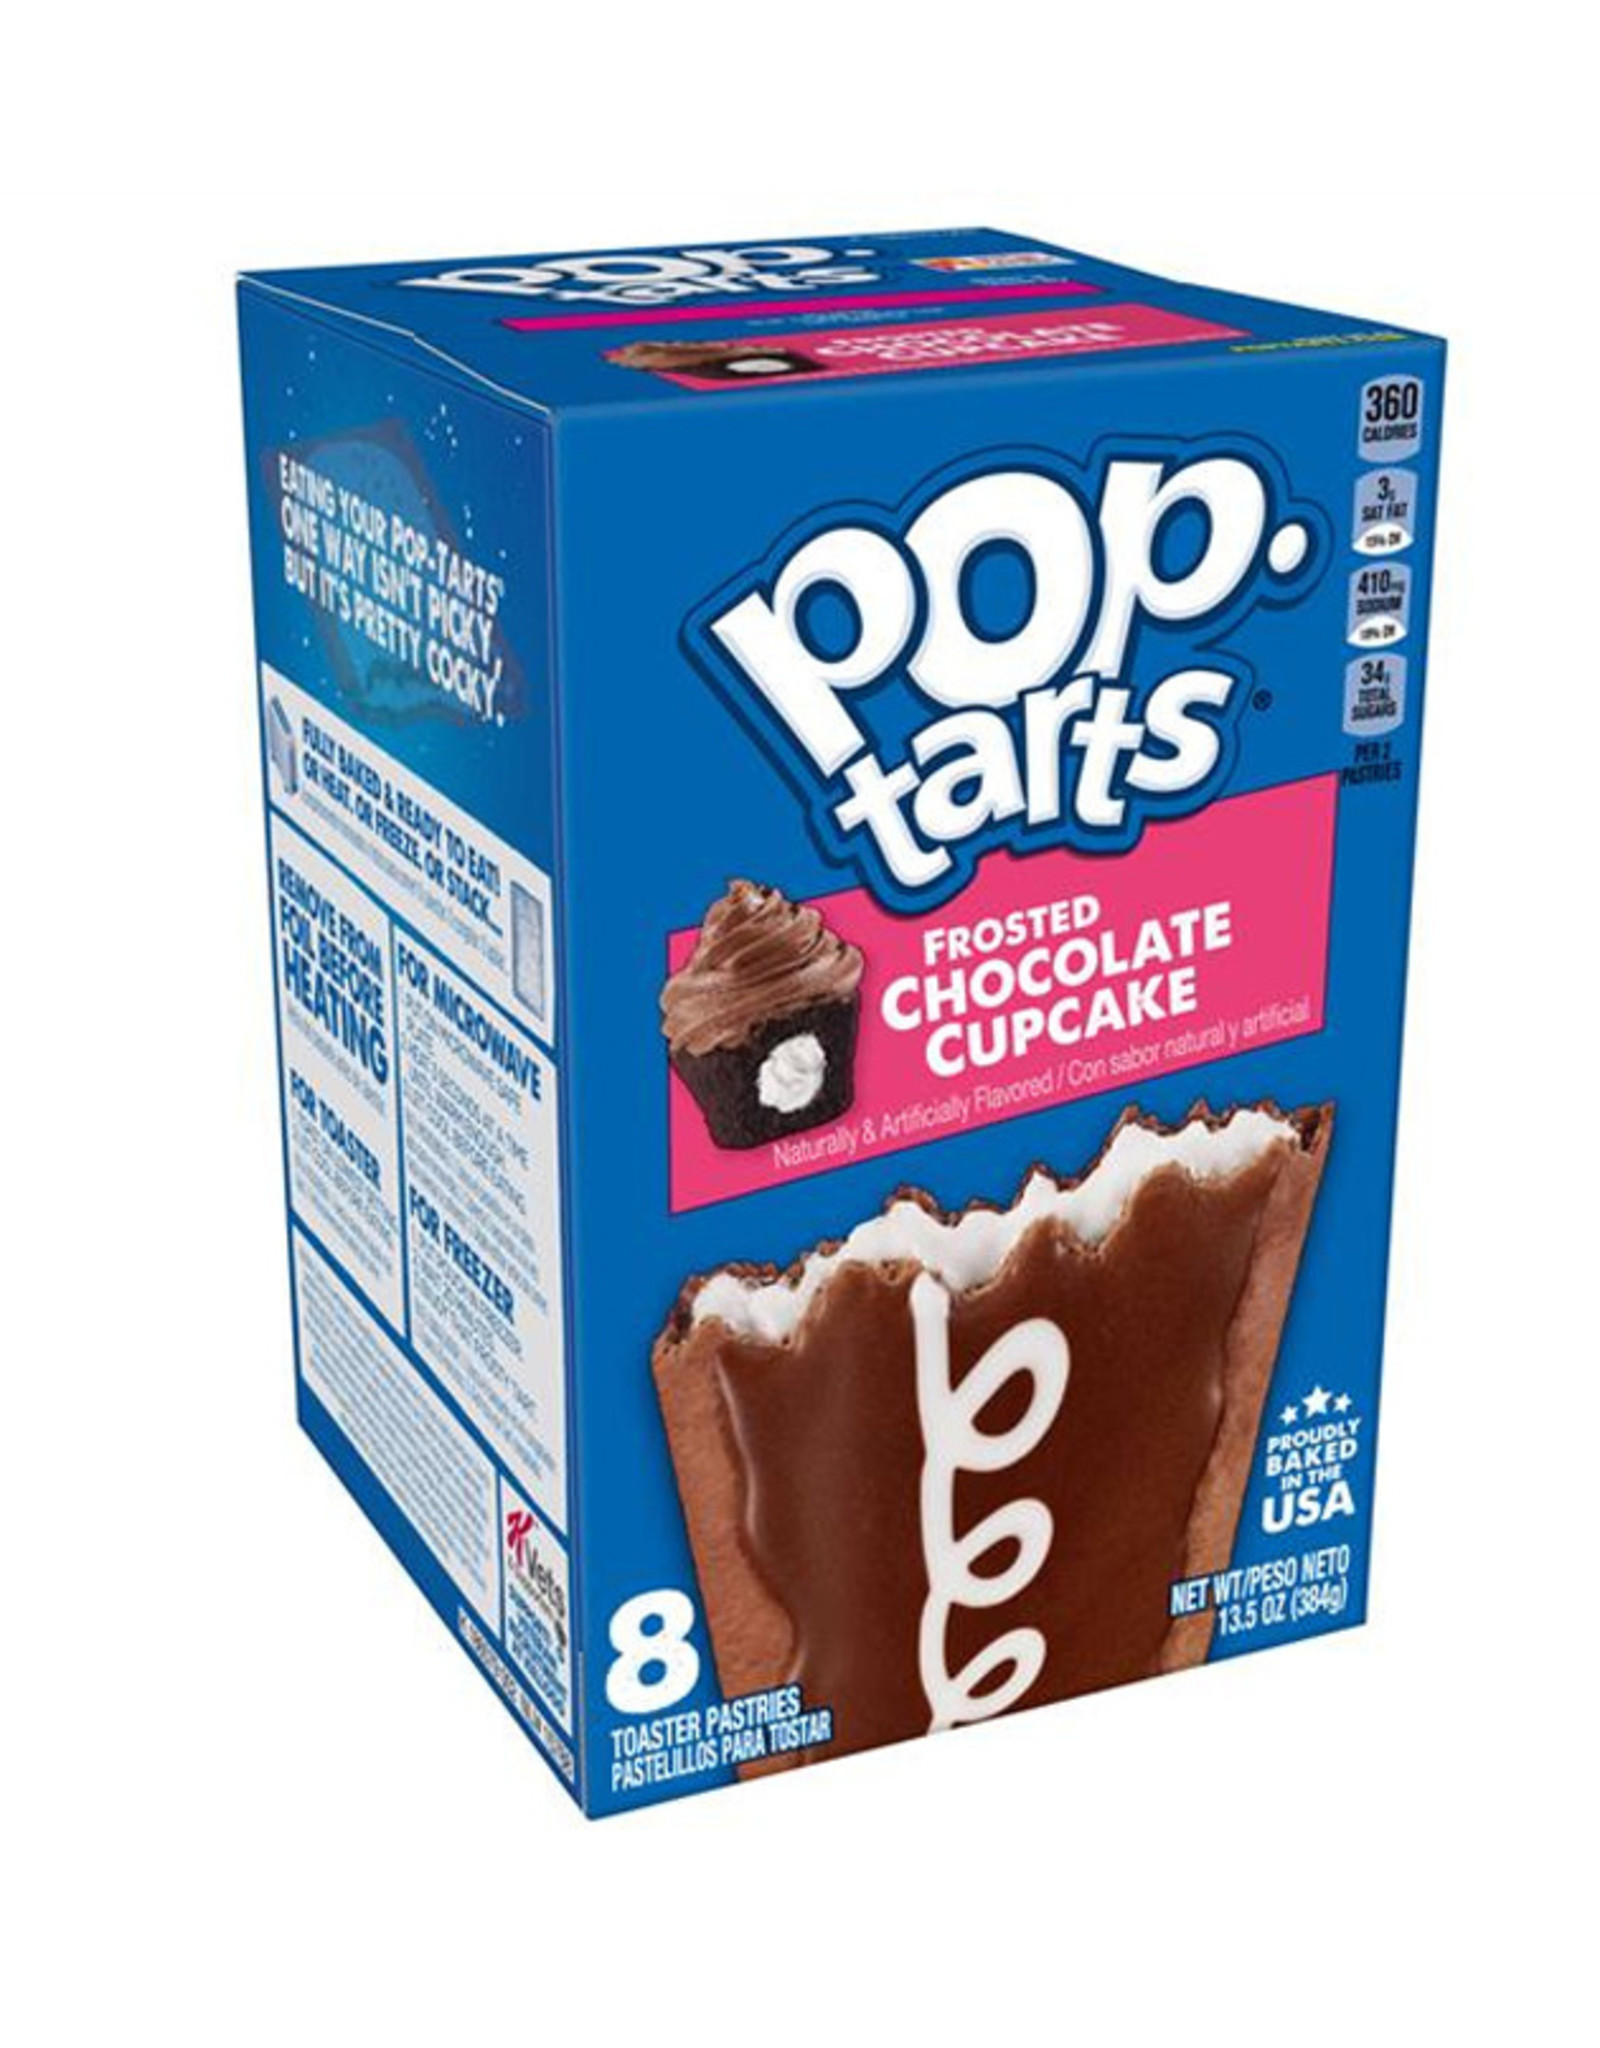 Pop-Tarts Frosted Chocolate Cupcake - 8 Pack - 384g